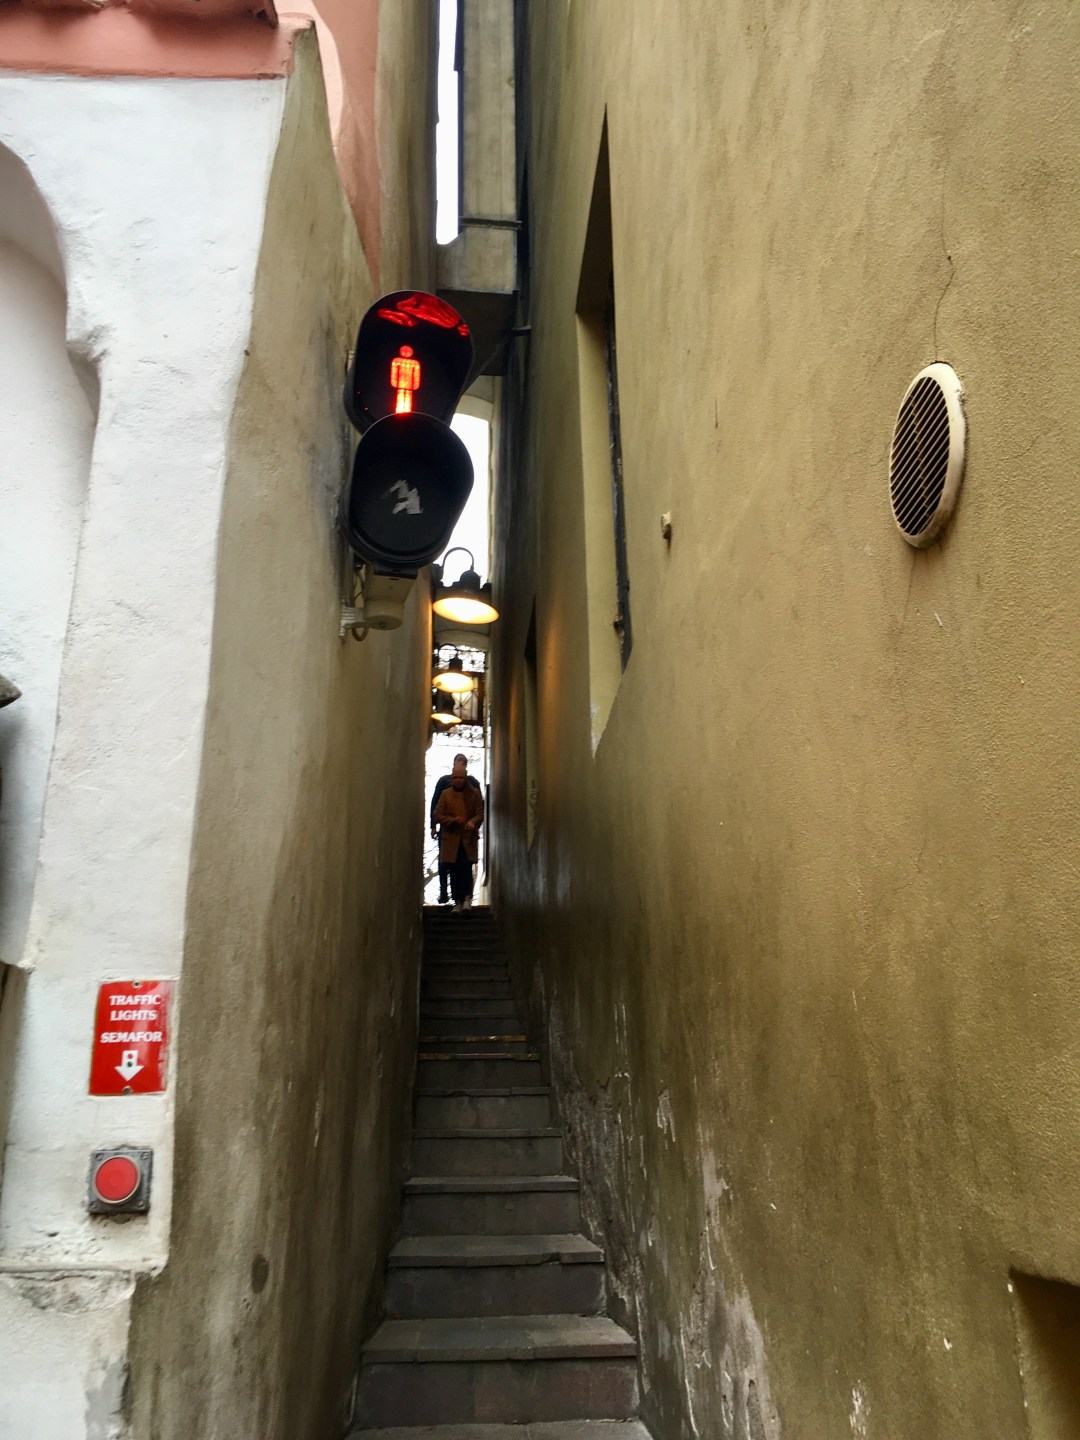 Narrowest street Prague Czech Republic